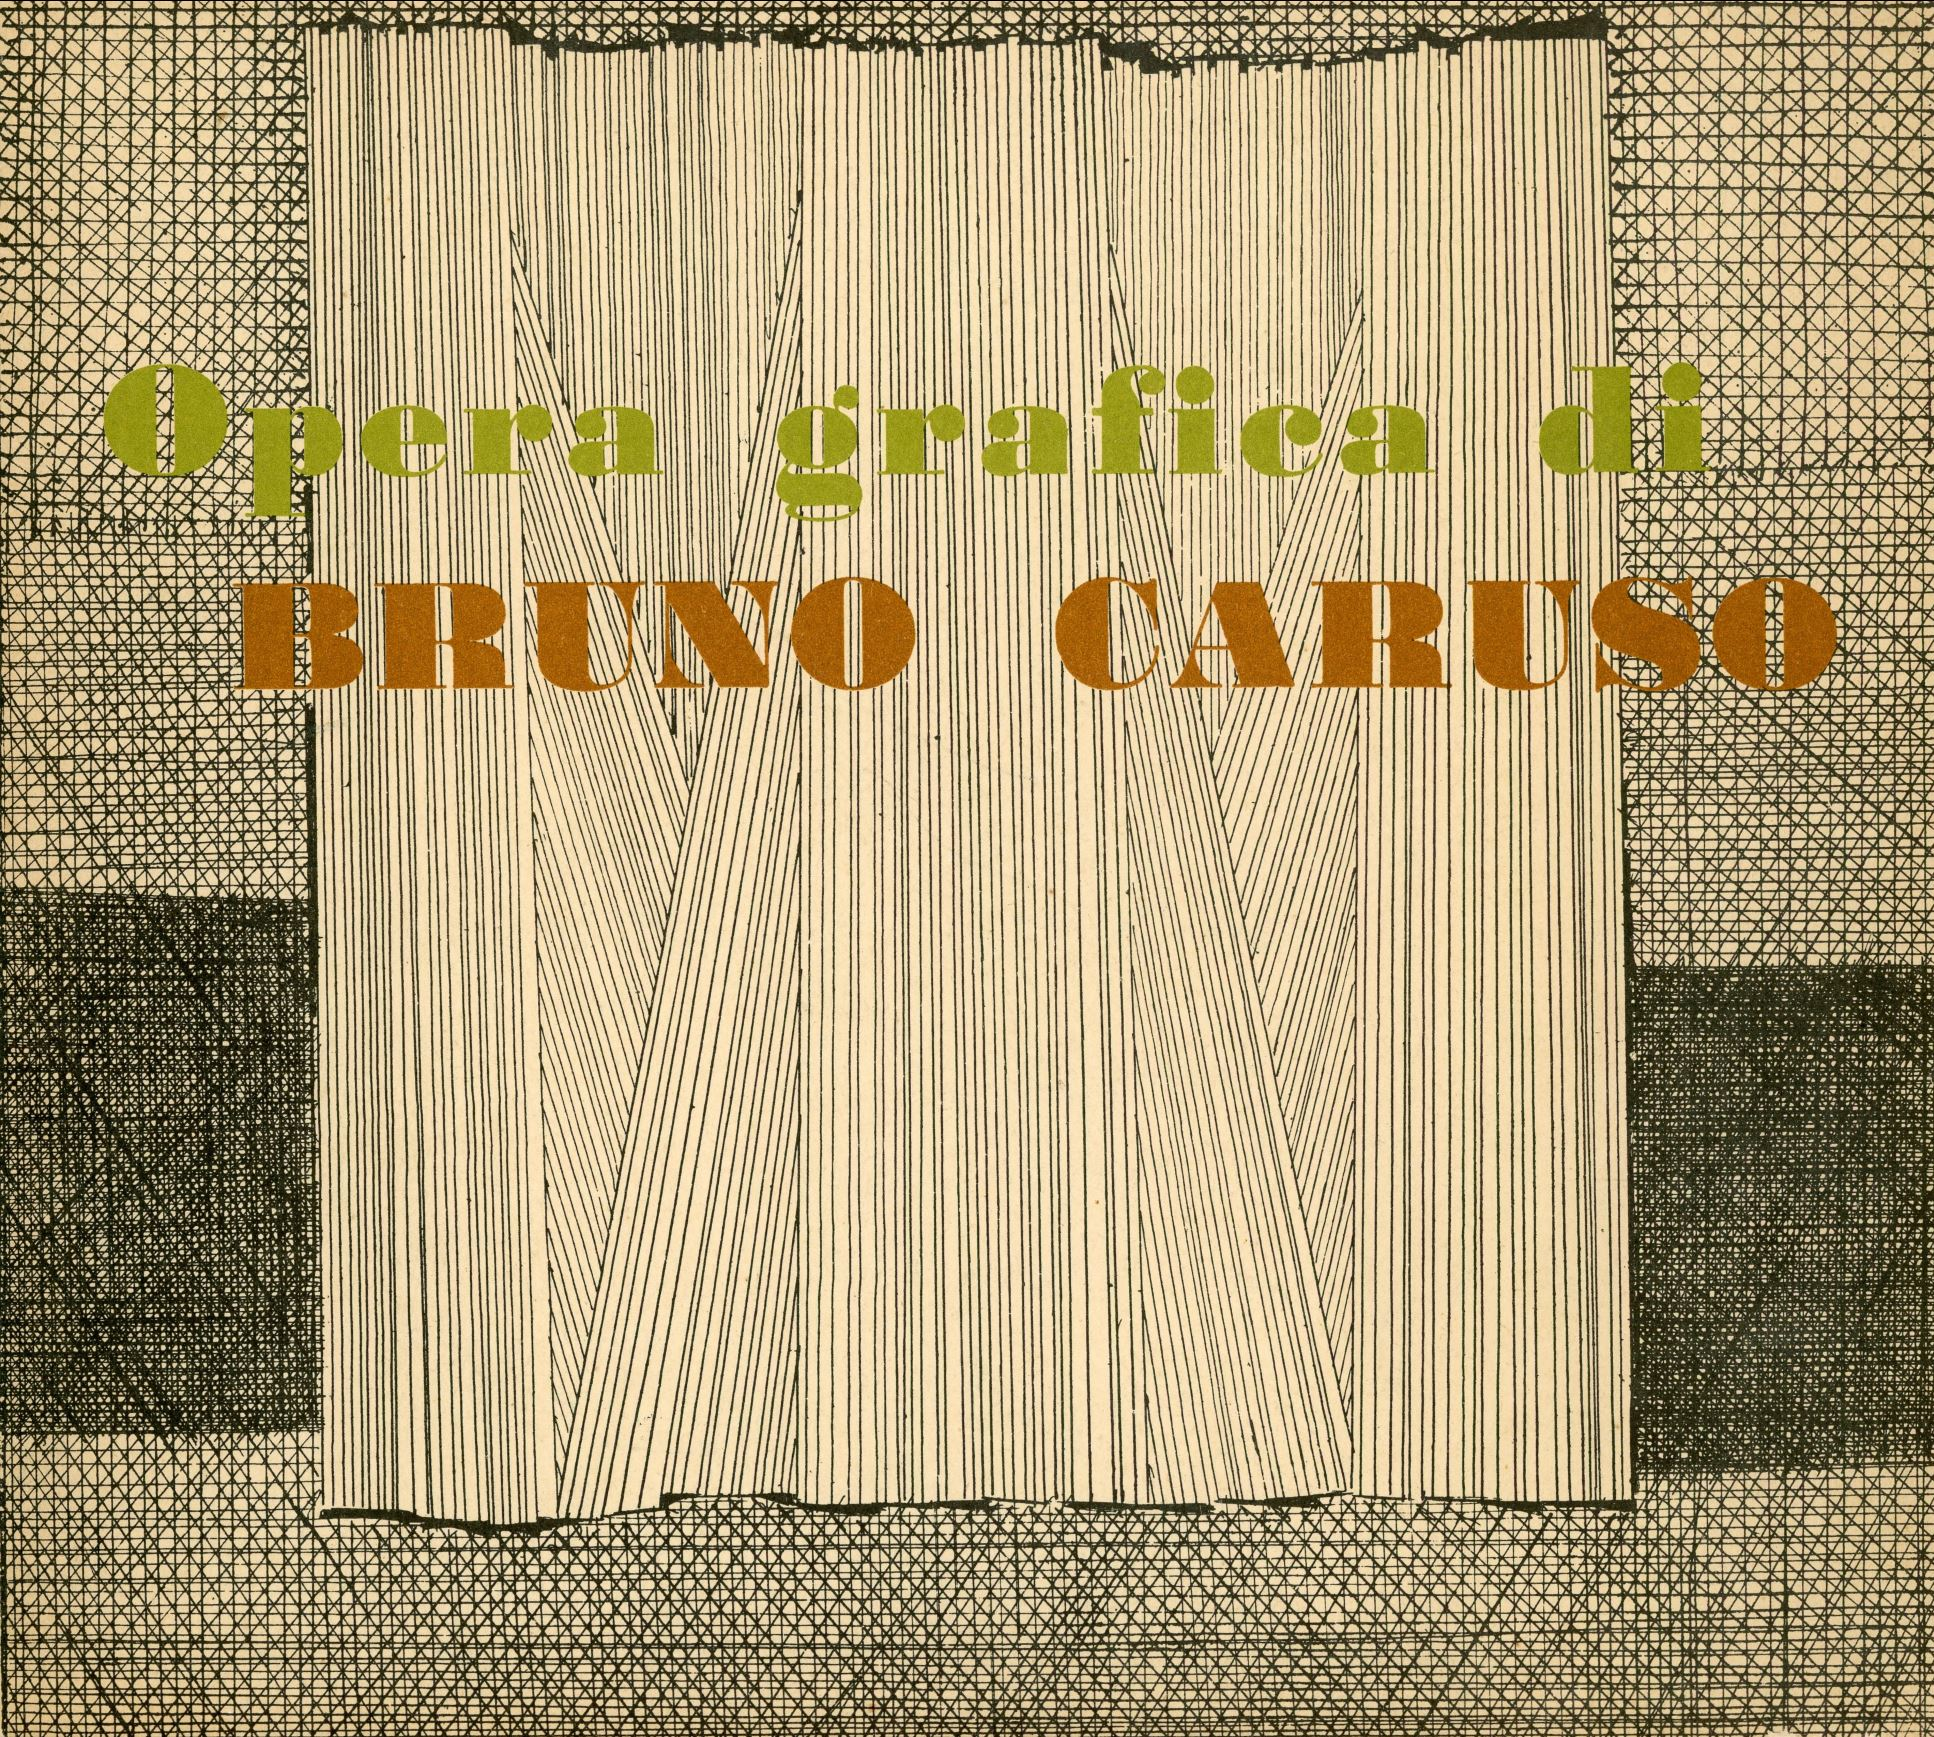 Peppe Fazio, Bruno Caruso's Graphic Work, 1958